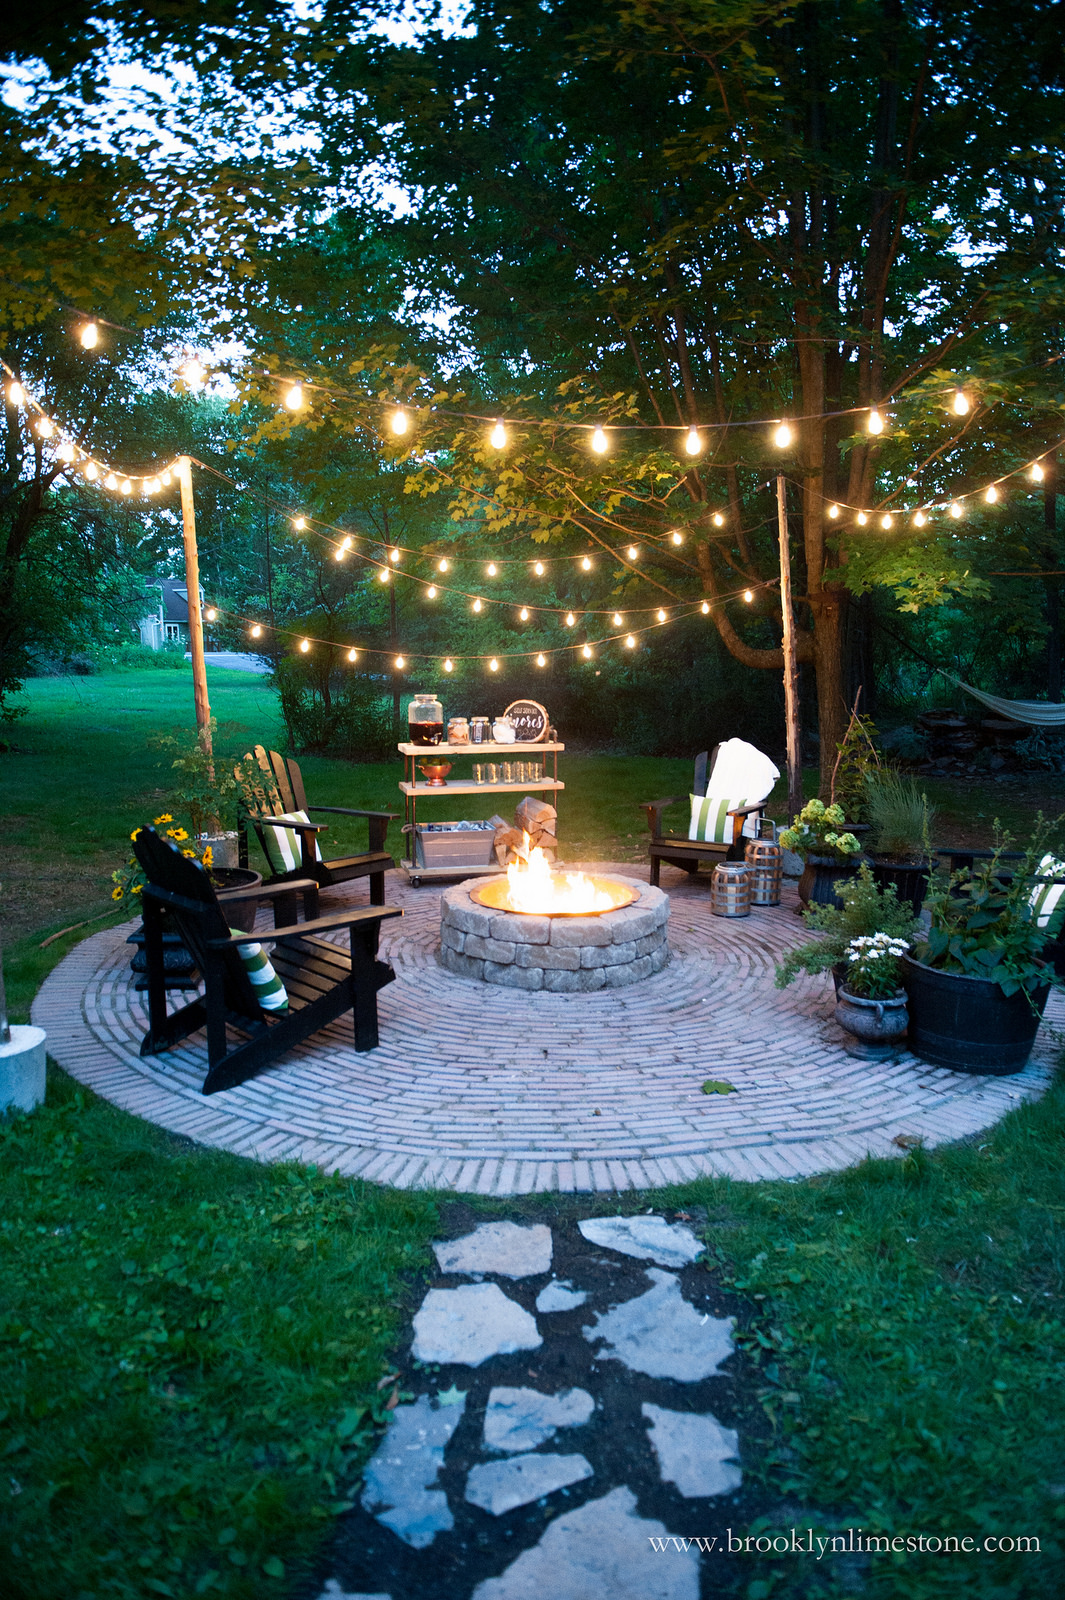 18 Fire Pit Ideas For Your Backyard - Best of DIY Ideas on Outdoor Fire Pit Ideas id=29242